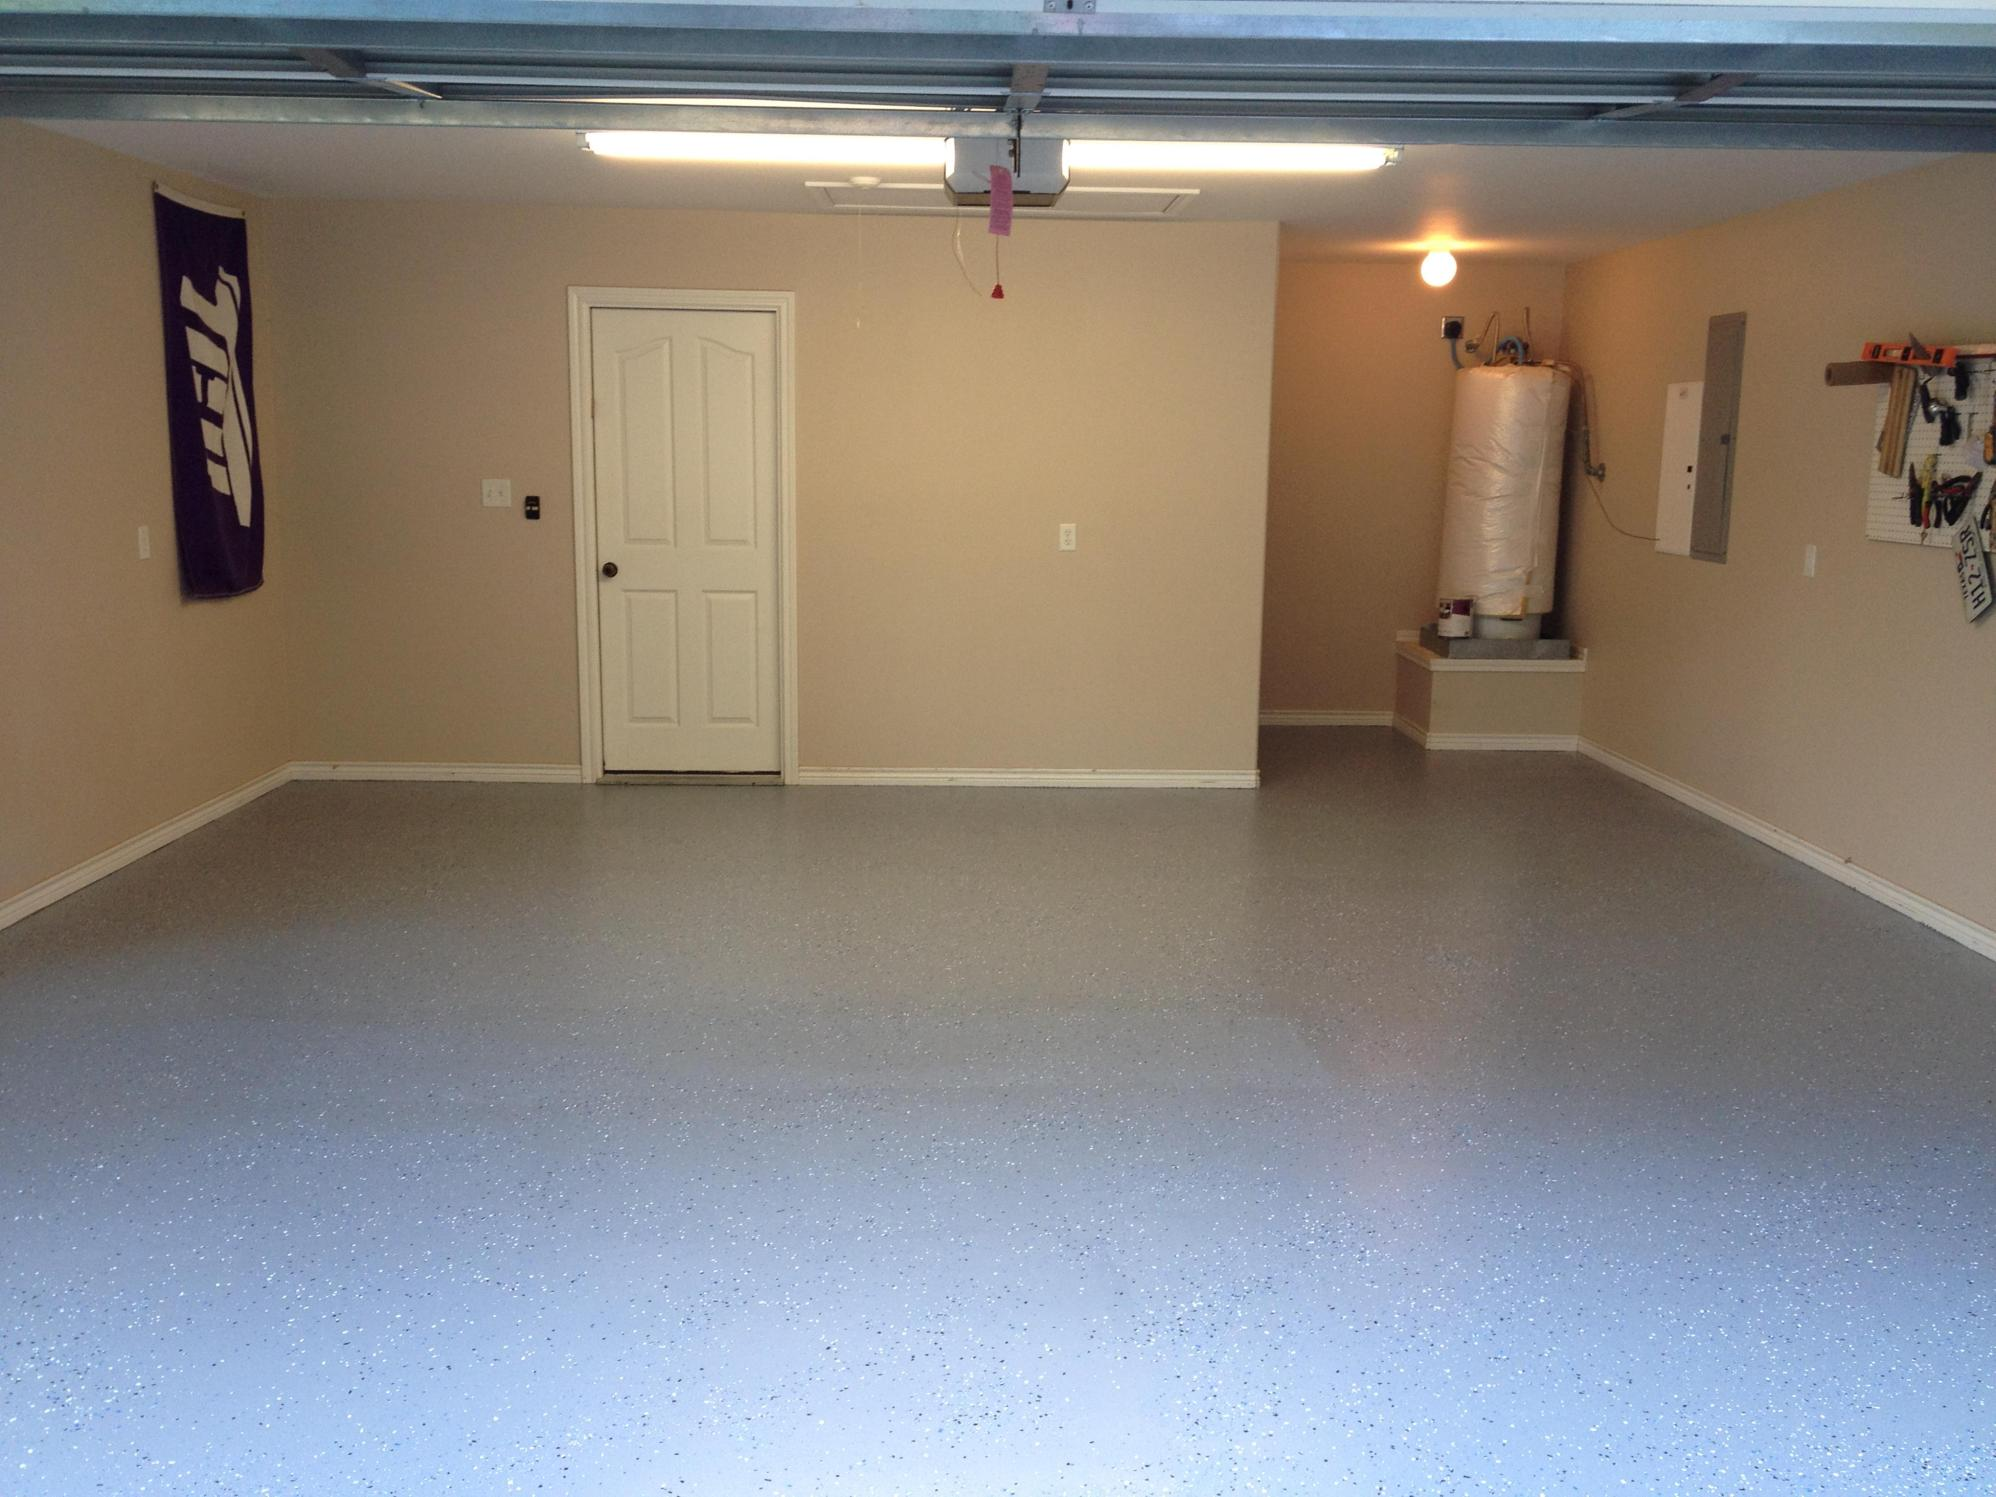 Basement Concrete Floor Paint Color Ideas 18